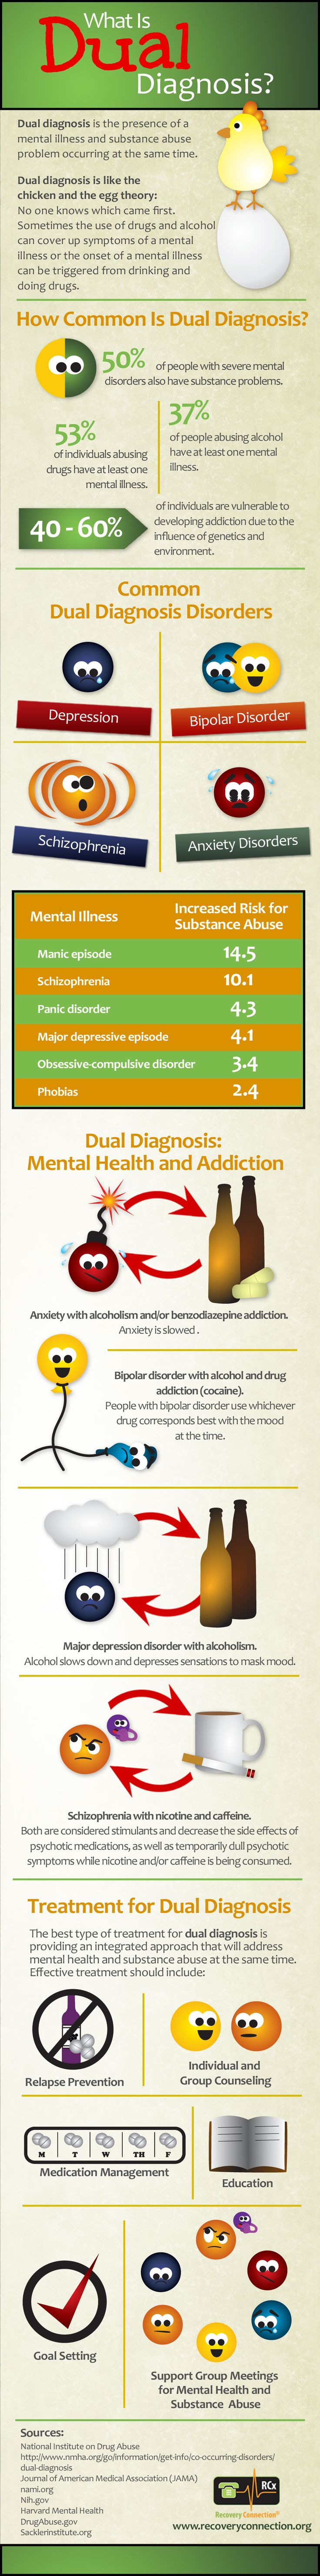 What is DualDiagnosis Infographic. Visit  http://www.counselinginsite.com/about.html for more information and resources from Counseling Insite. Knowledge is Power